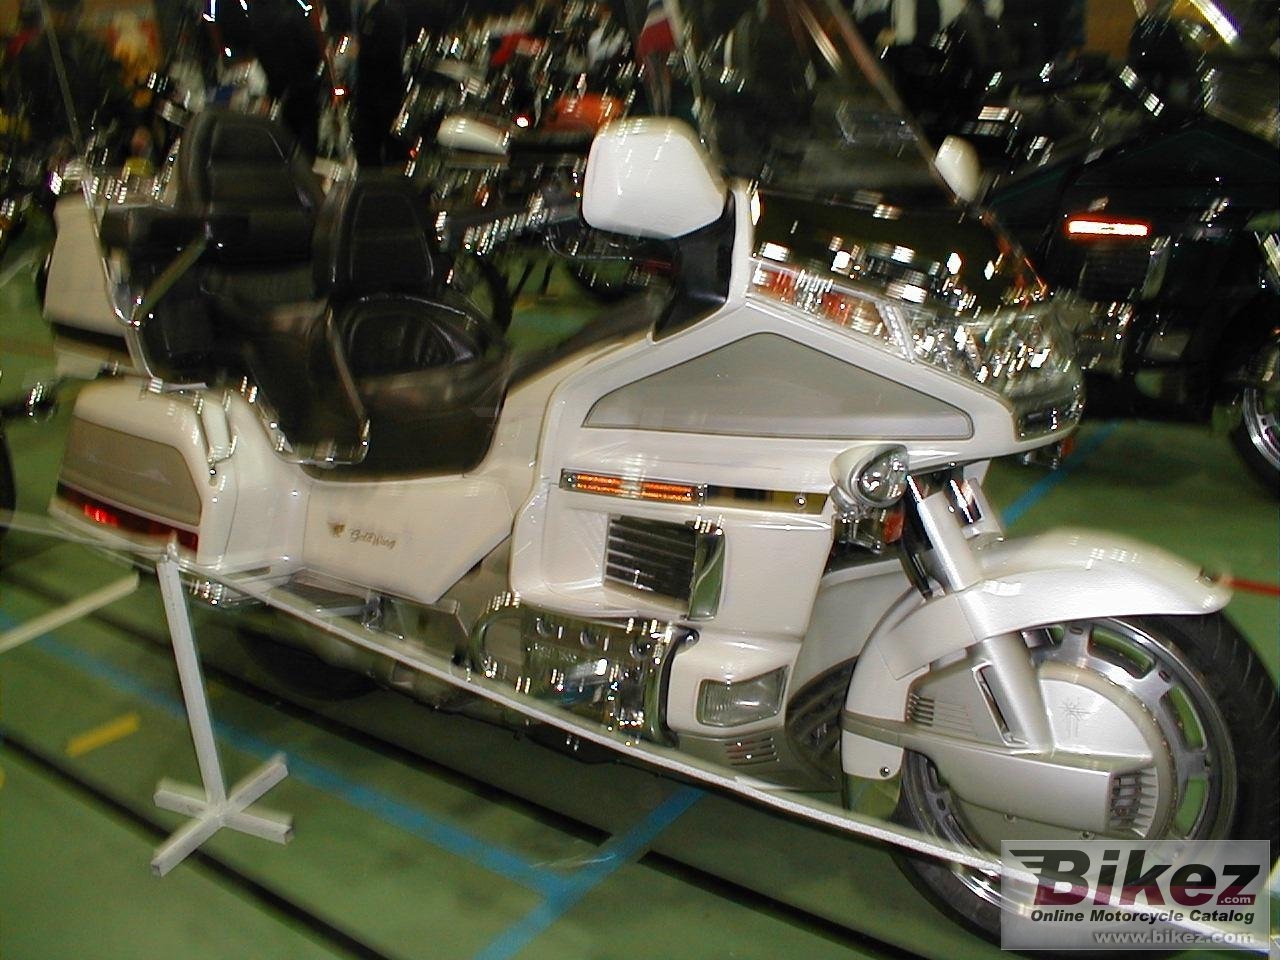 Big Harald Holm gl 1500-6 gold wing picture and wallpaper from Bikez.com